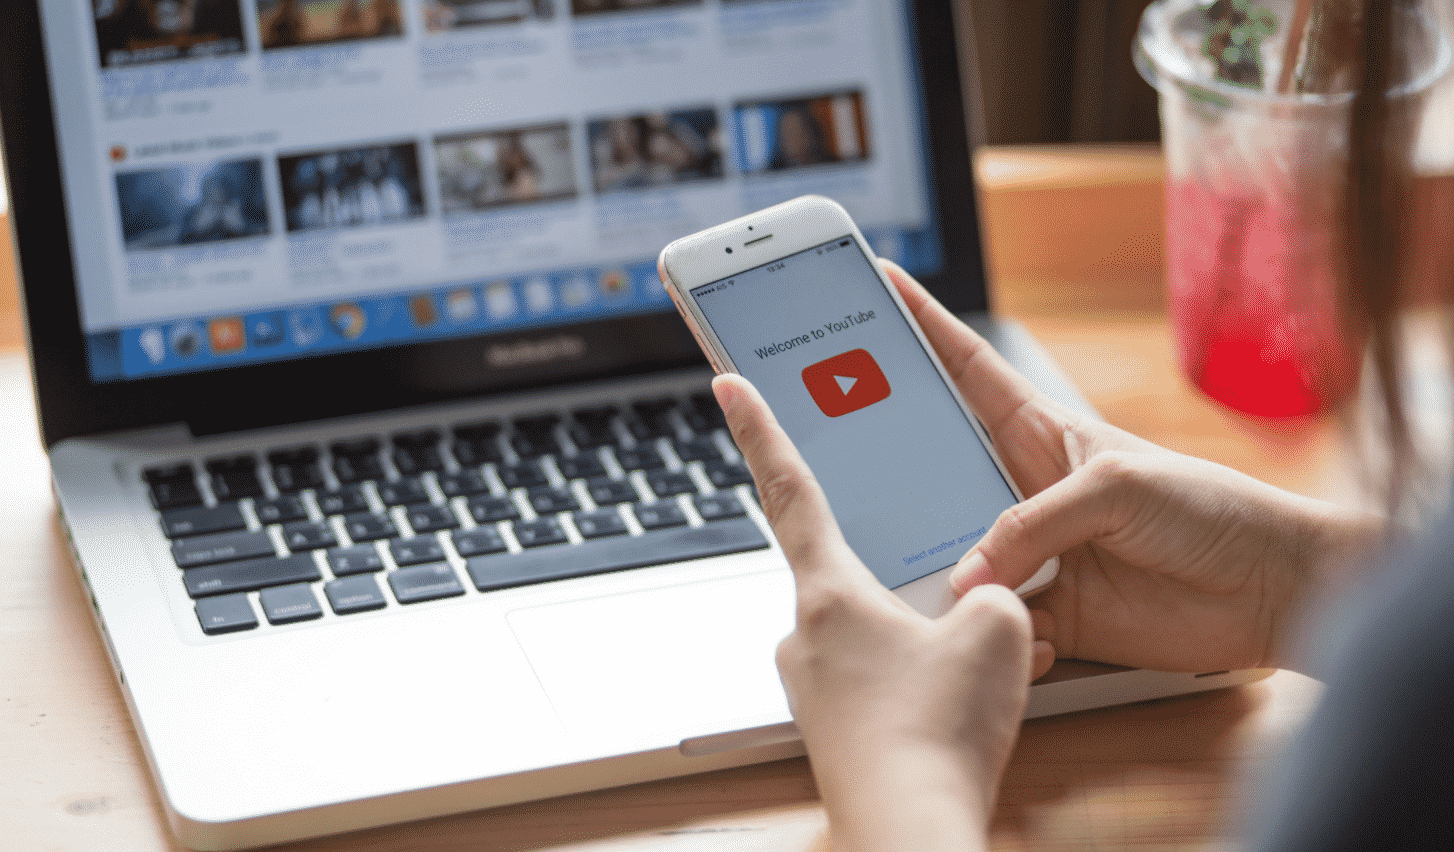 Can I Download YouTube Videos Legally?